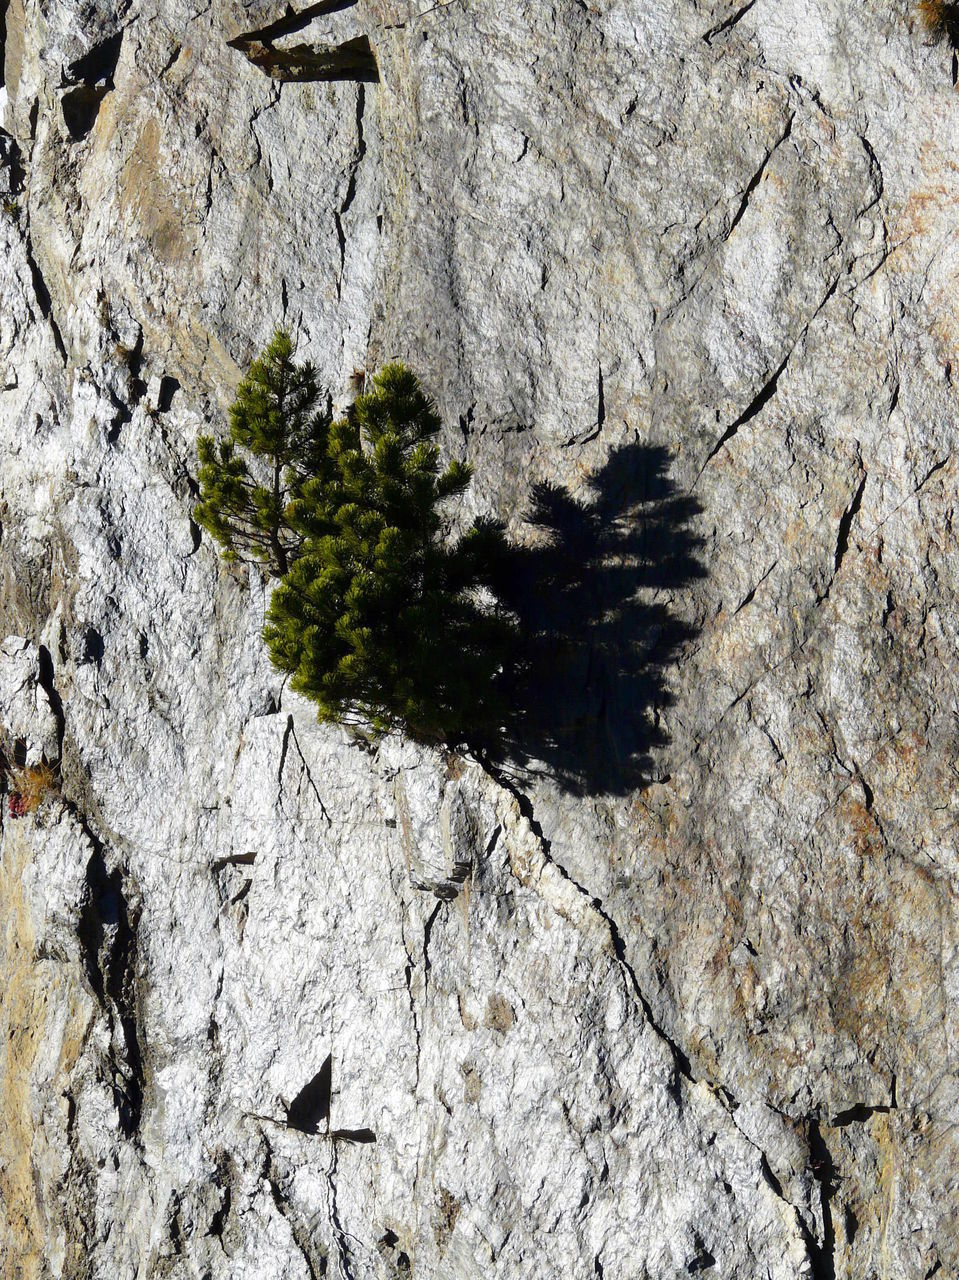 textured, nature, no people, day, growth, tree, close-up, outdoors, animal themes